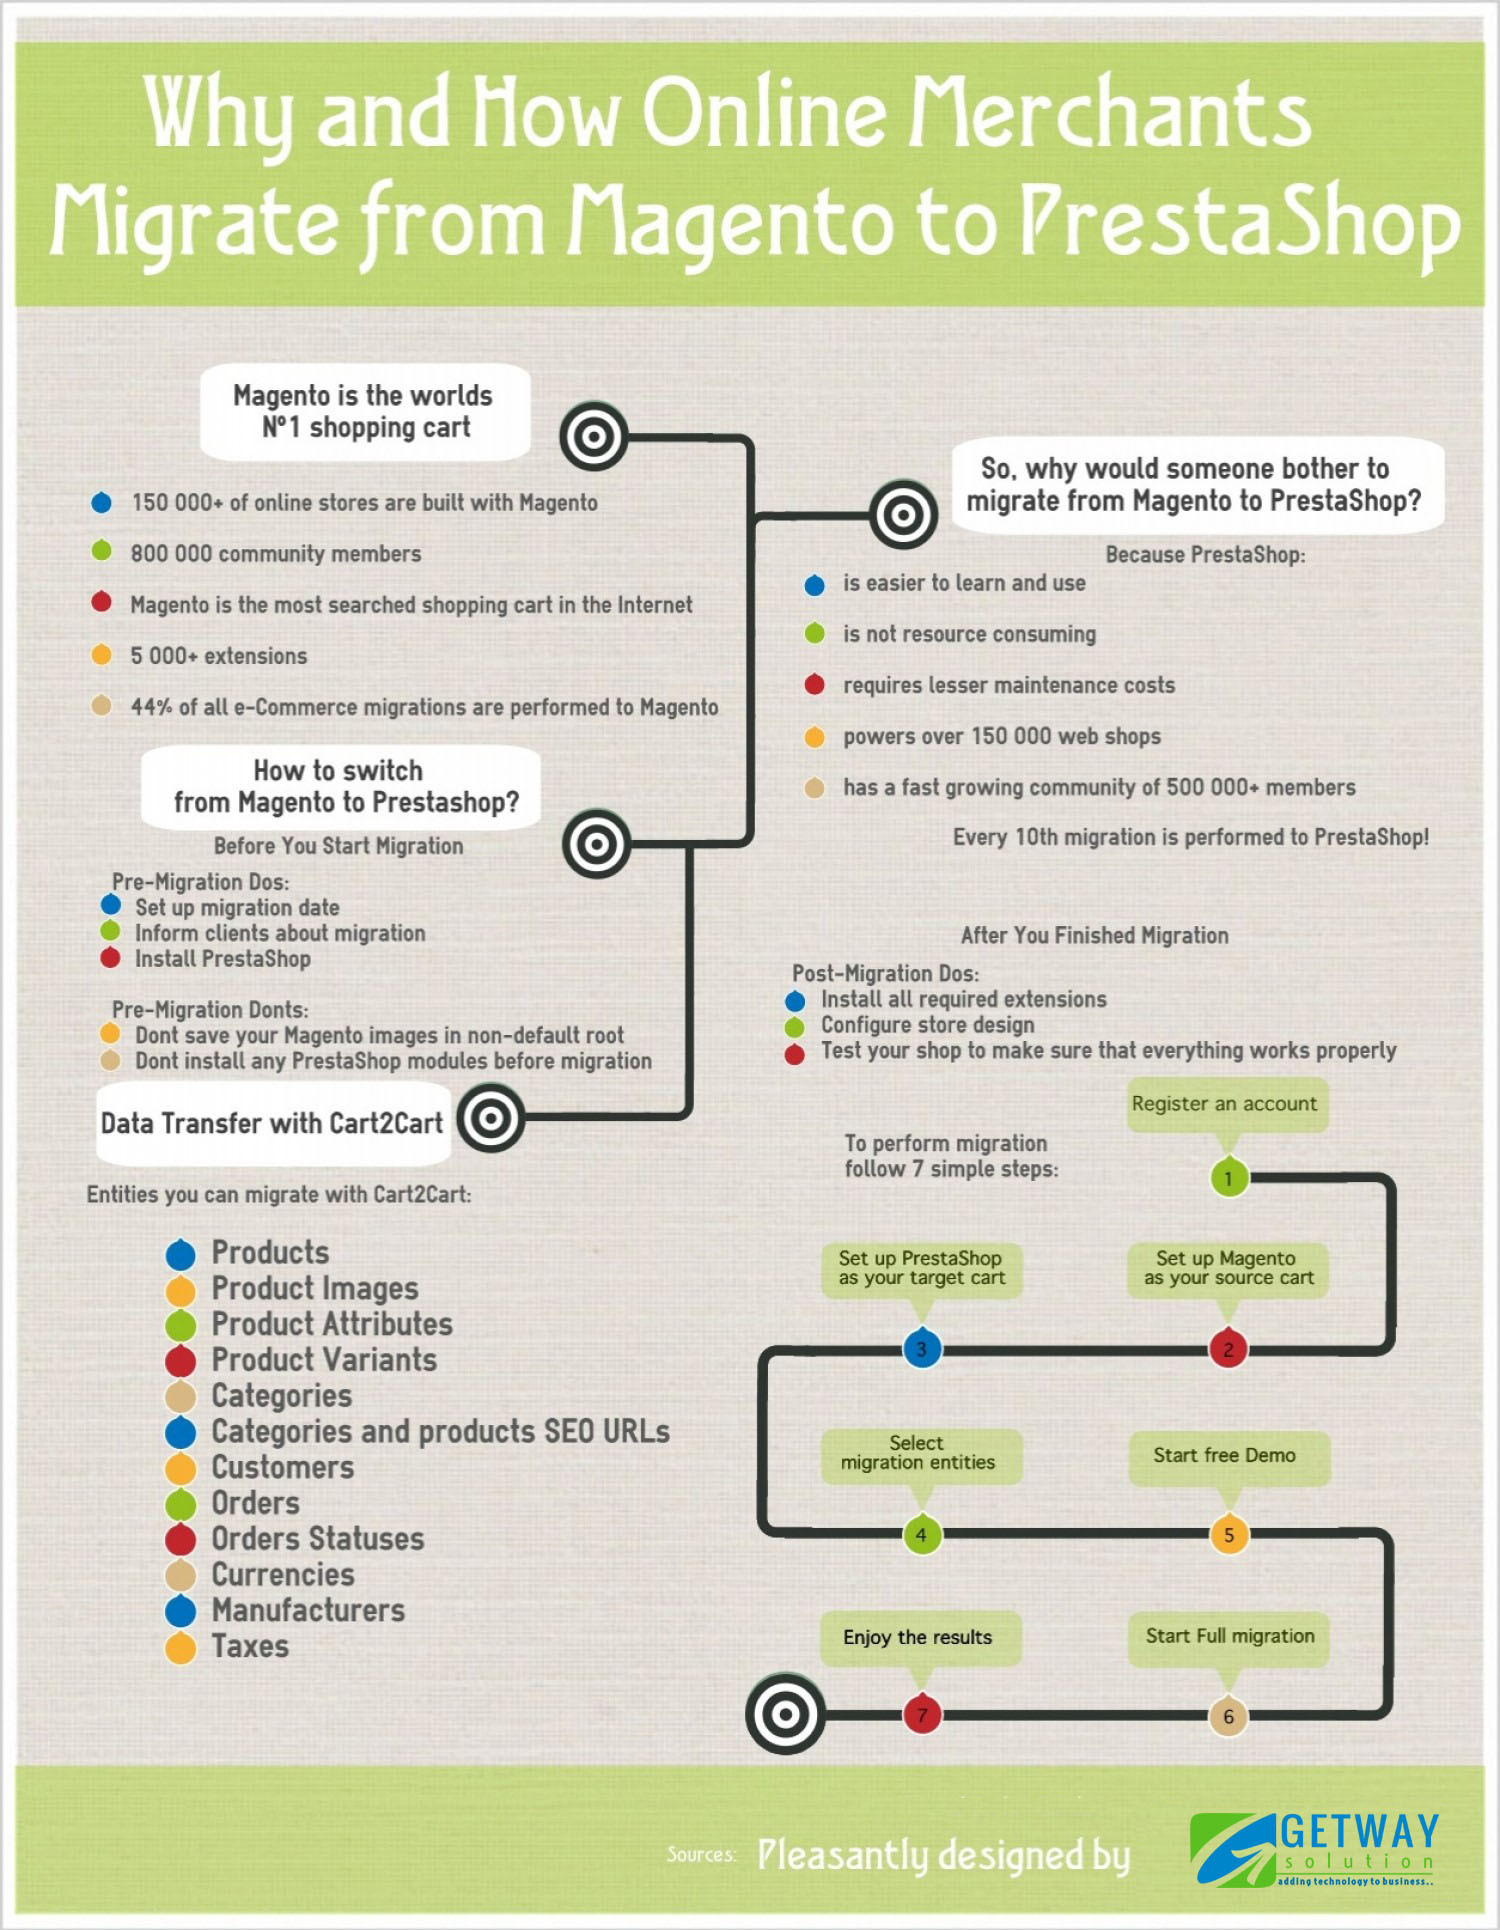 How Online Merchants Migrate from Magento to PrestaShop Infographic